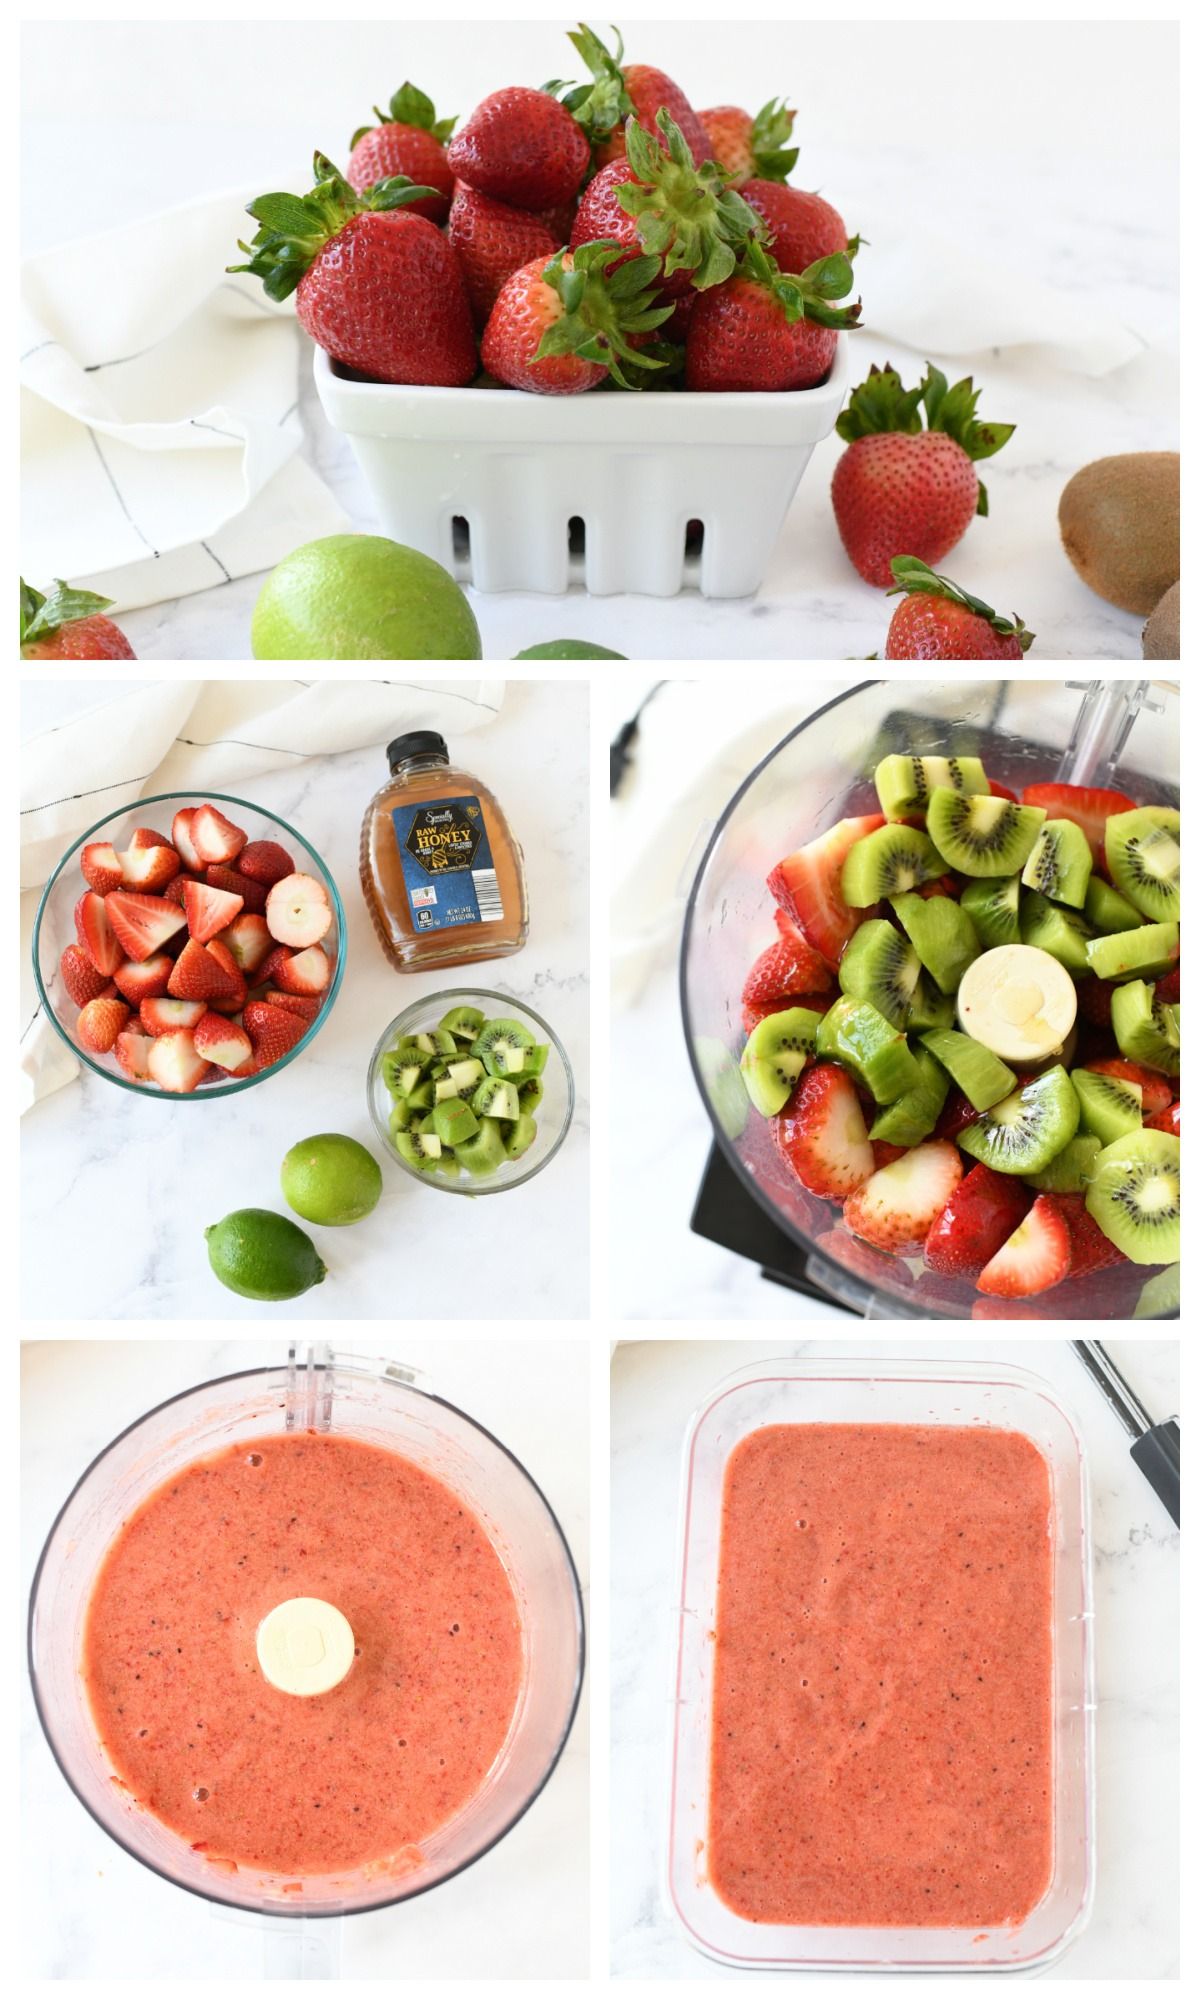 A 5 image collage that showcases the process of making strawberry sorbet,